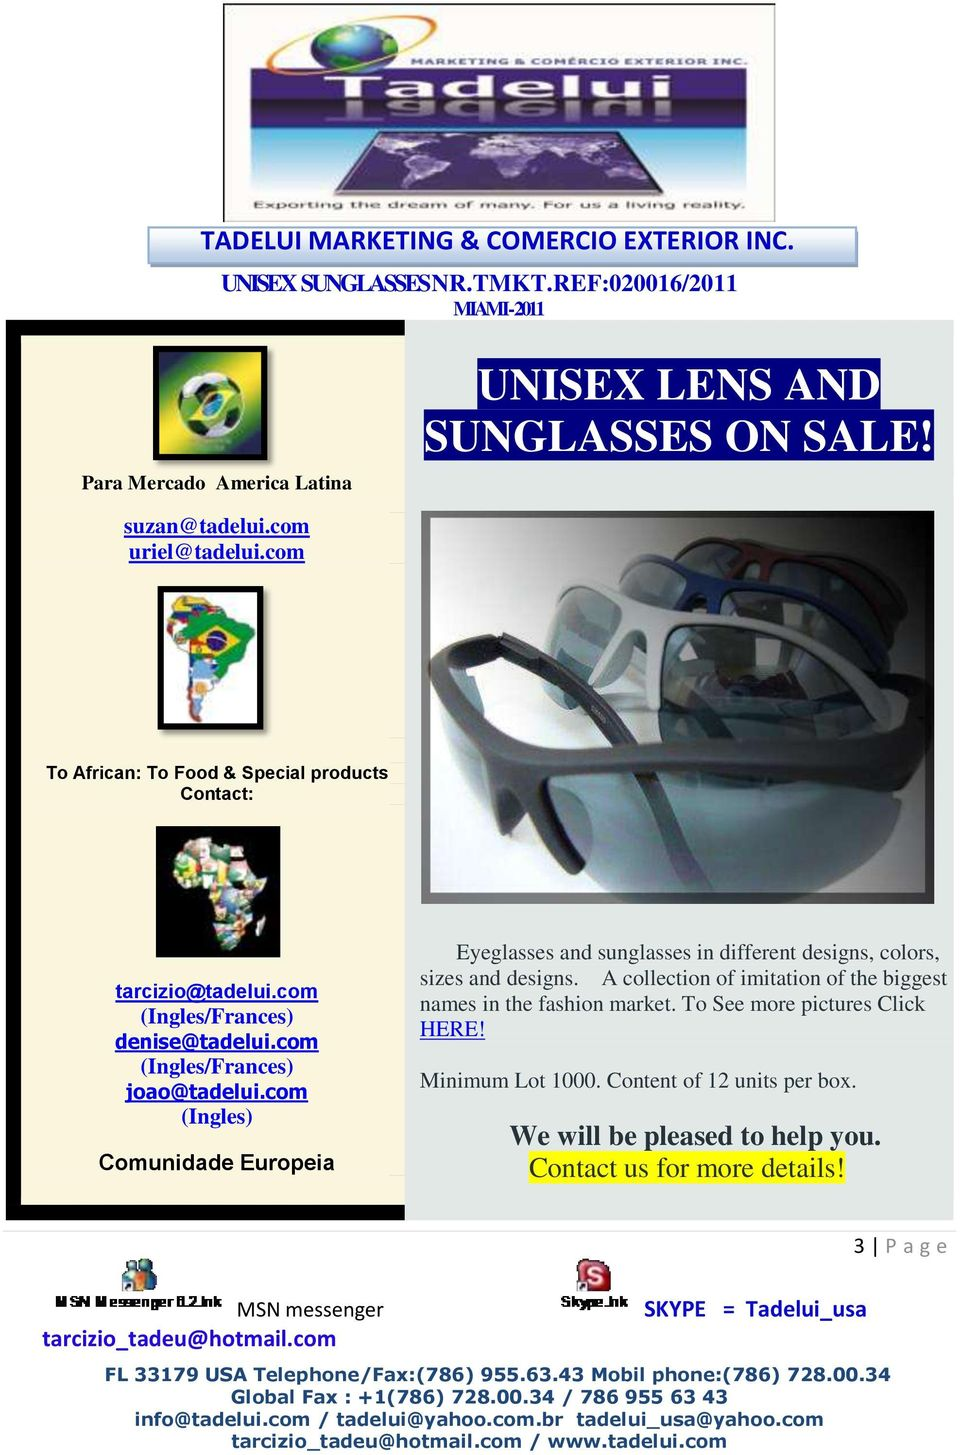 com (Ingles) Comunidade Europeia Eyeglasses and sunglasses in different designs, colors, sizes and designs.